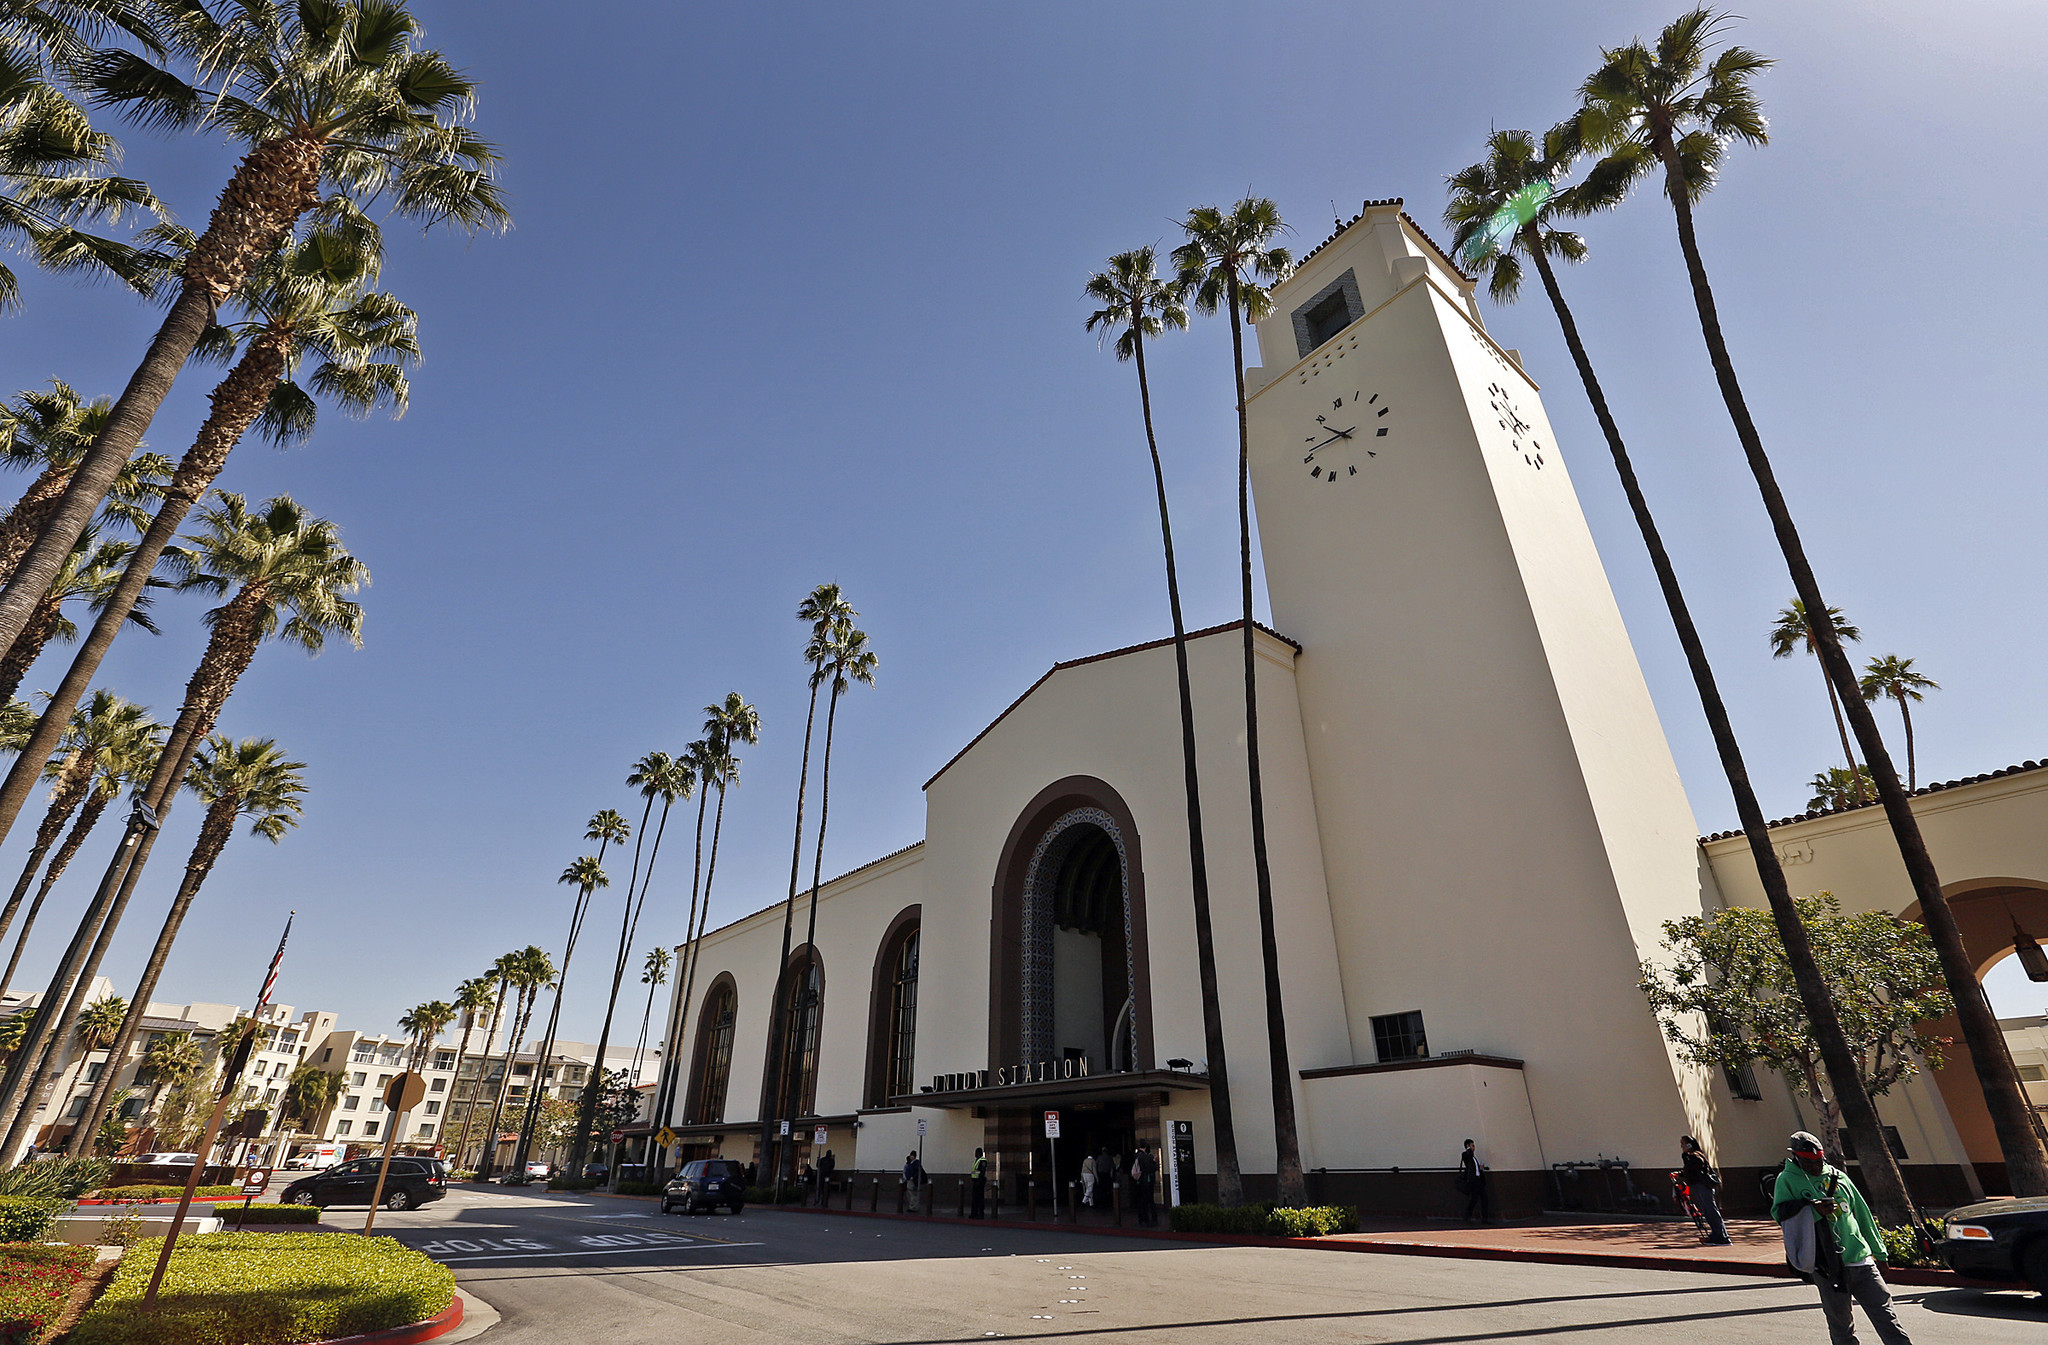 LOS ANGELES, CA - MARCH 31, 2016 - Passengers pass through the historic Union Station opened in May